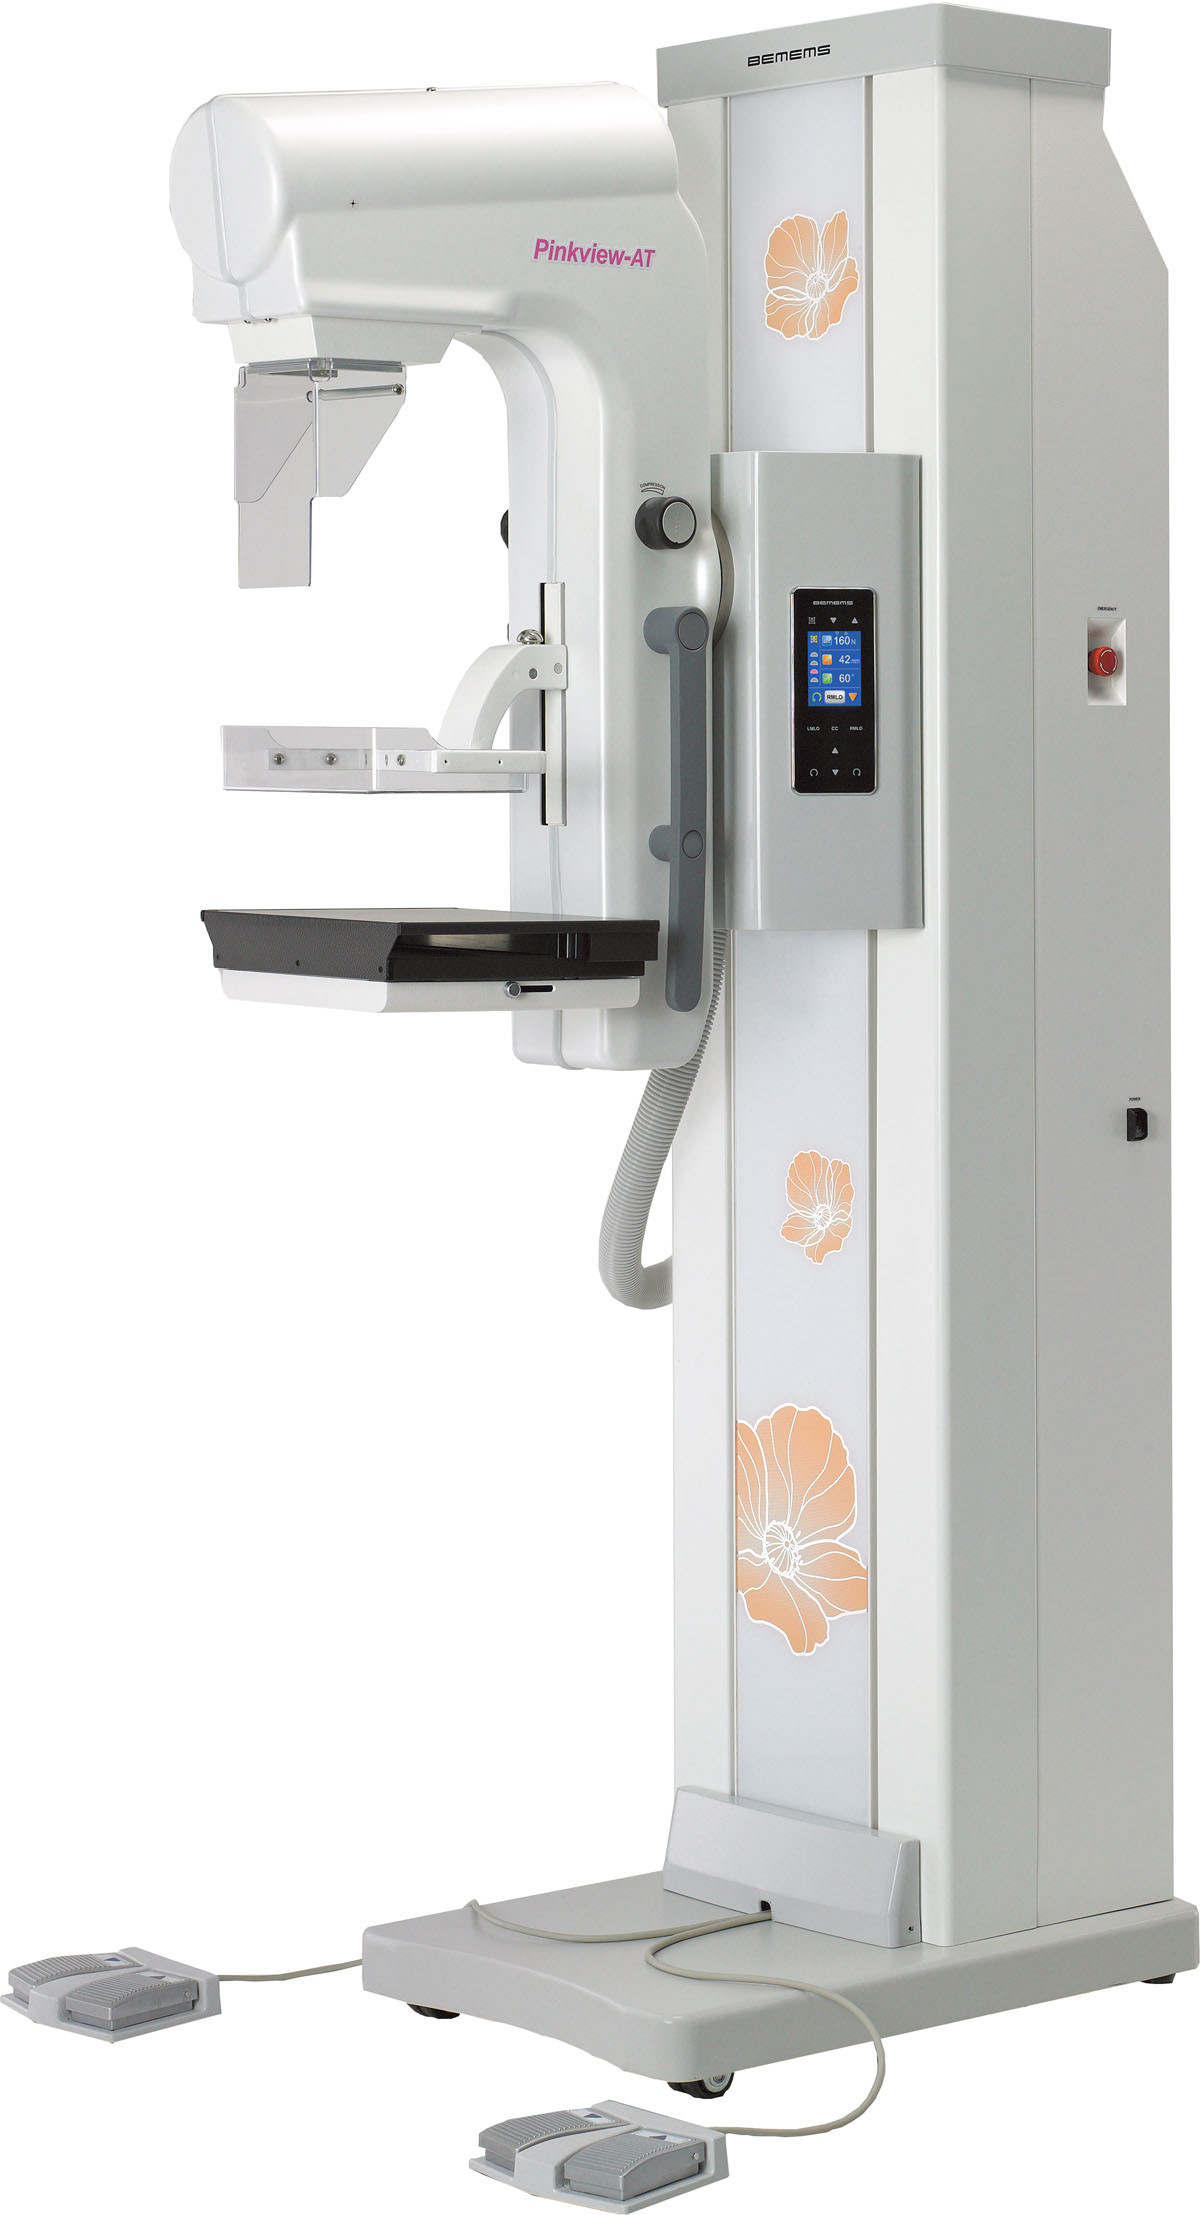 Radiology Equipment, Mammography system, Pinkview-AT